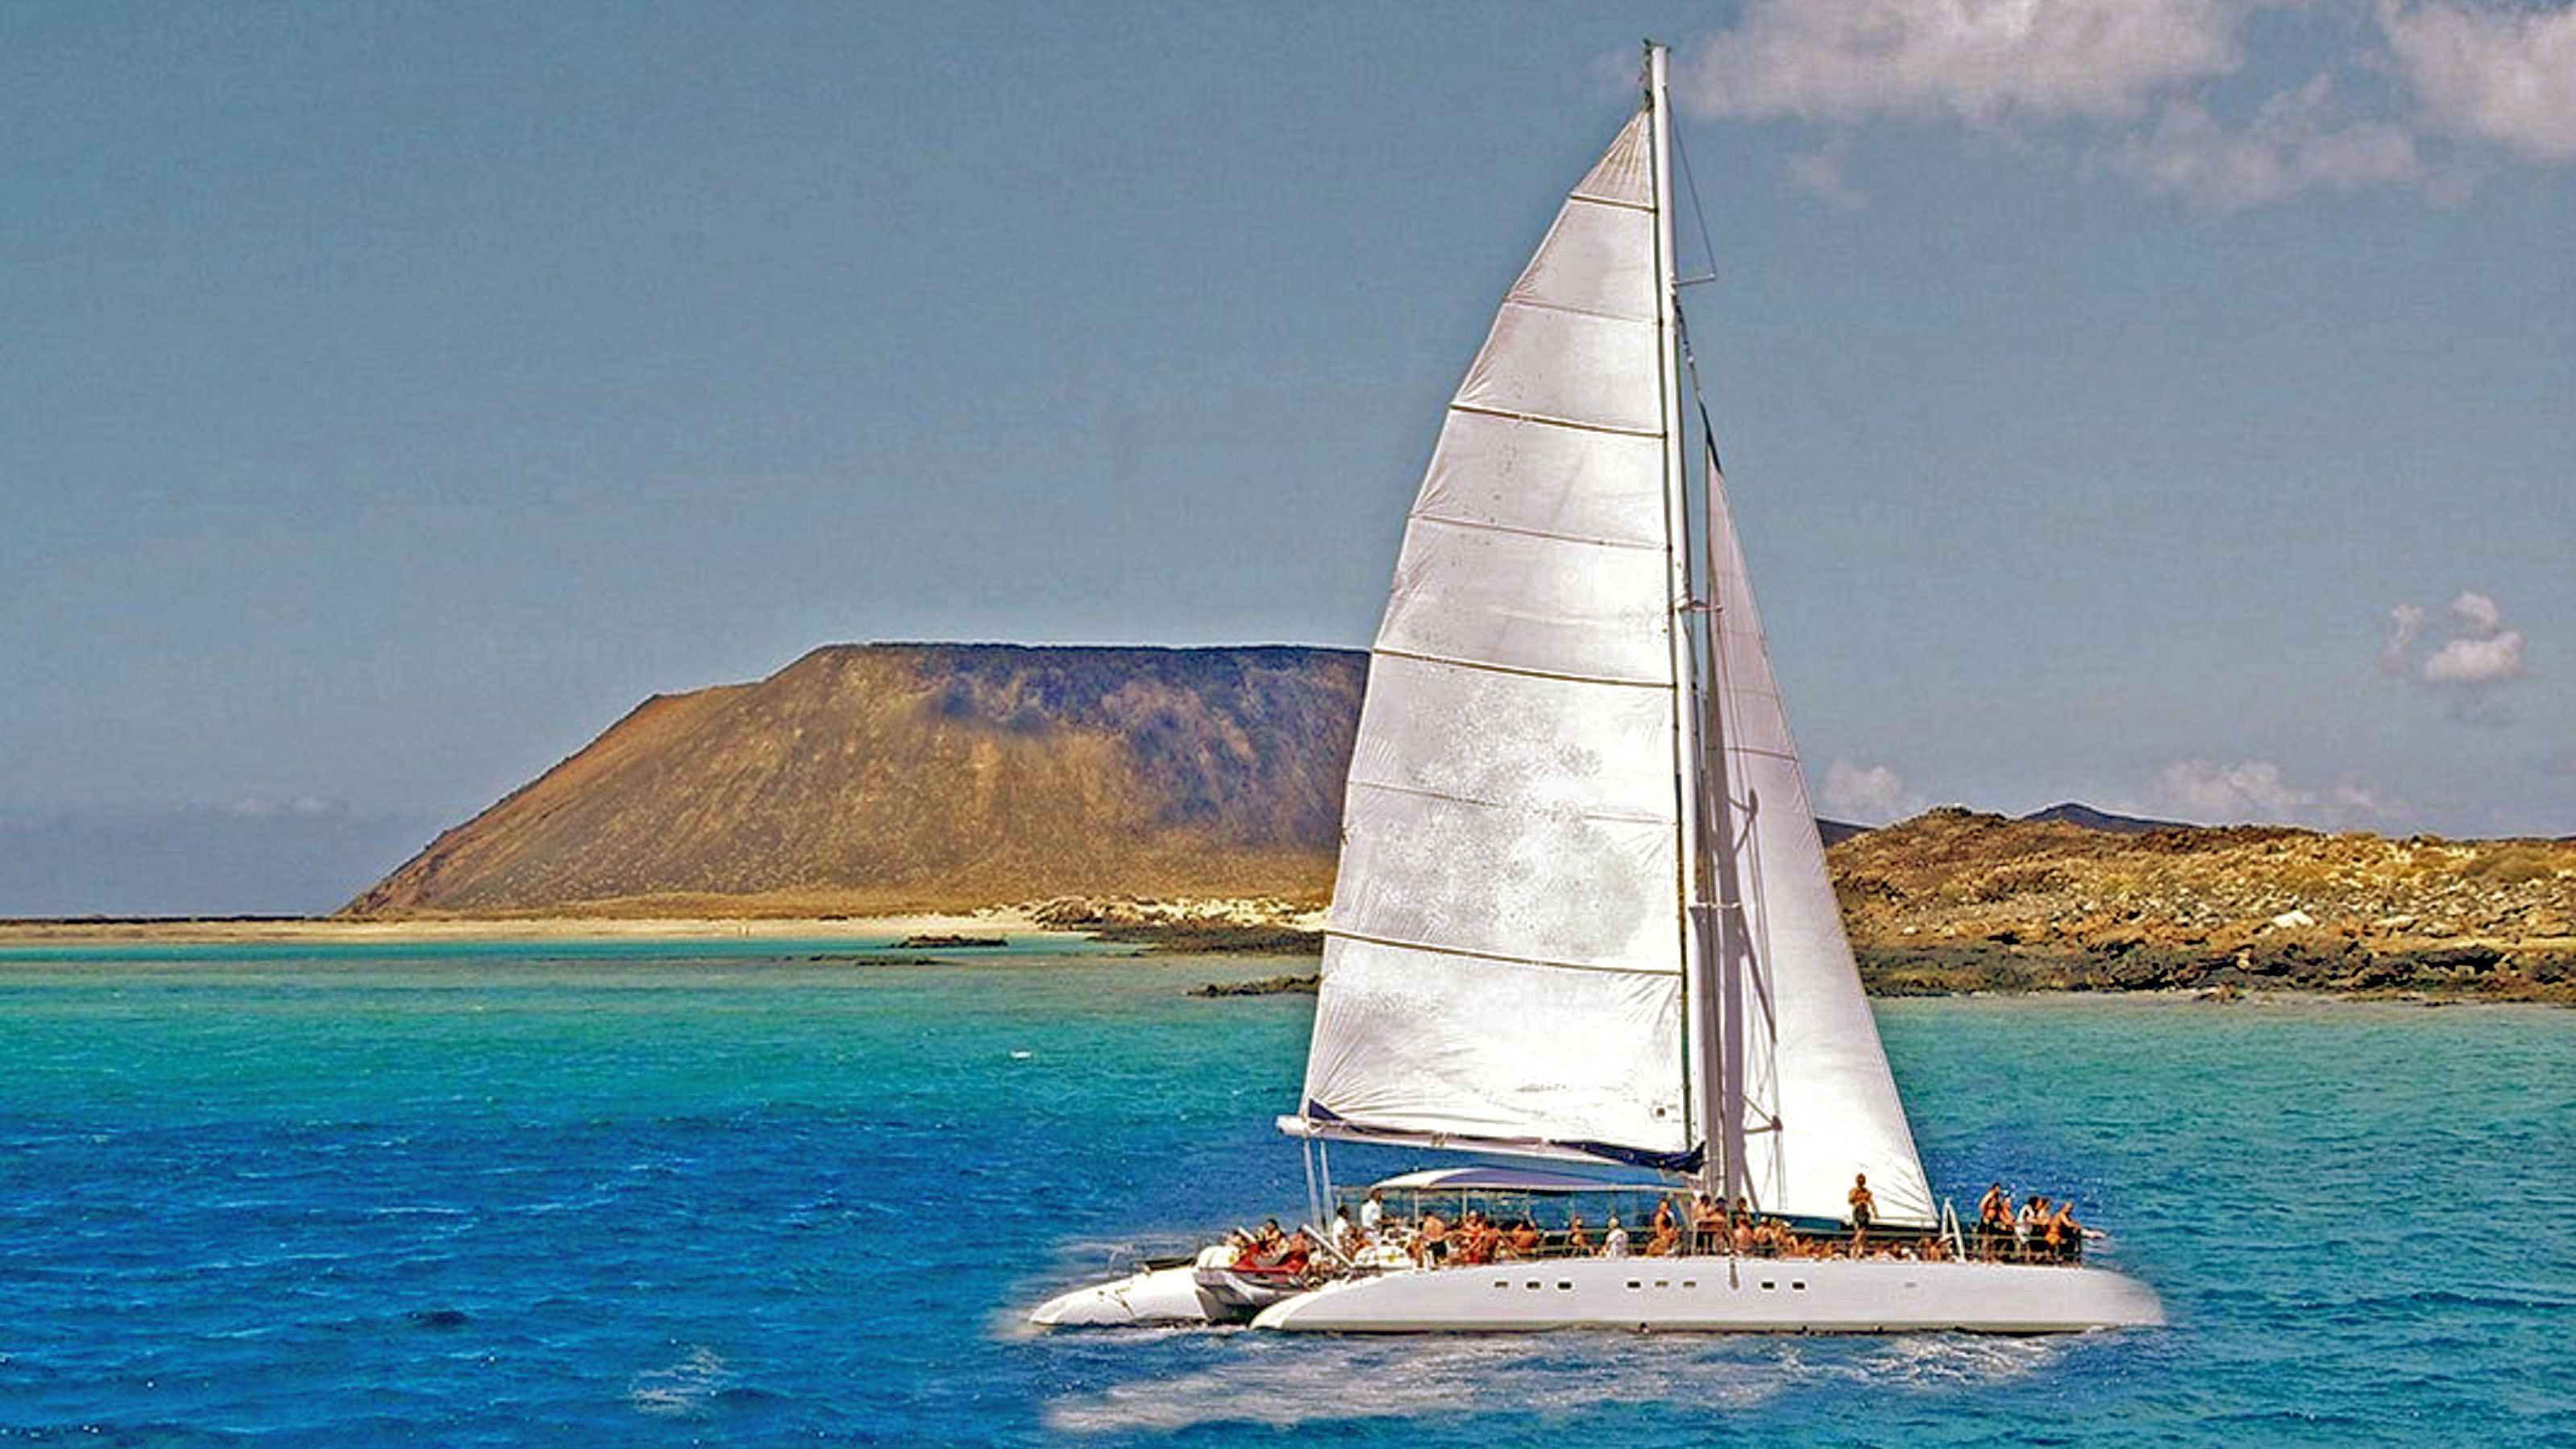 Boat sailing on the water with guests aboard in Catamaran Cruise to Playa de Papagayo